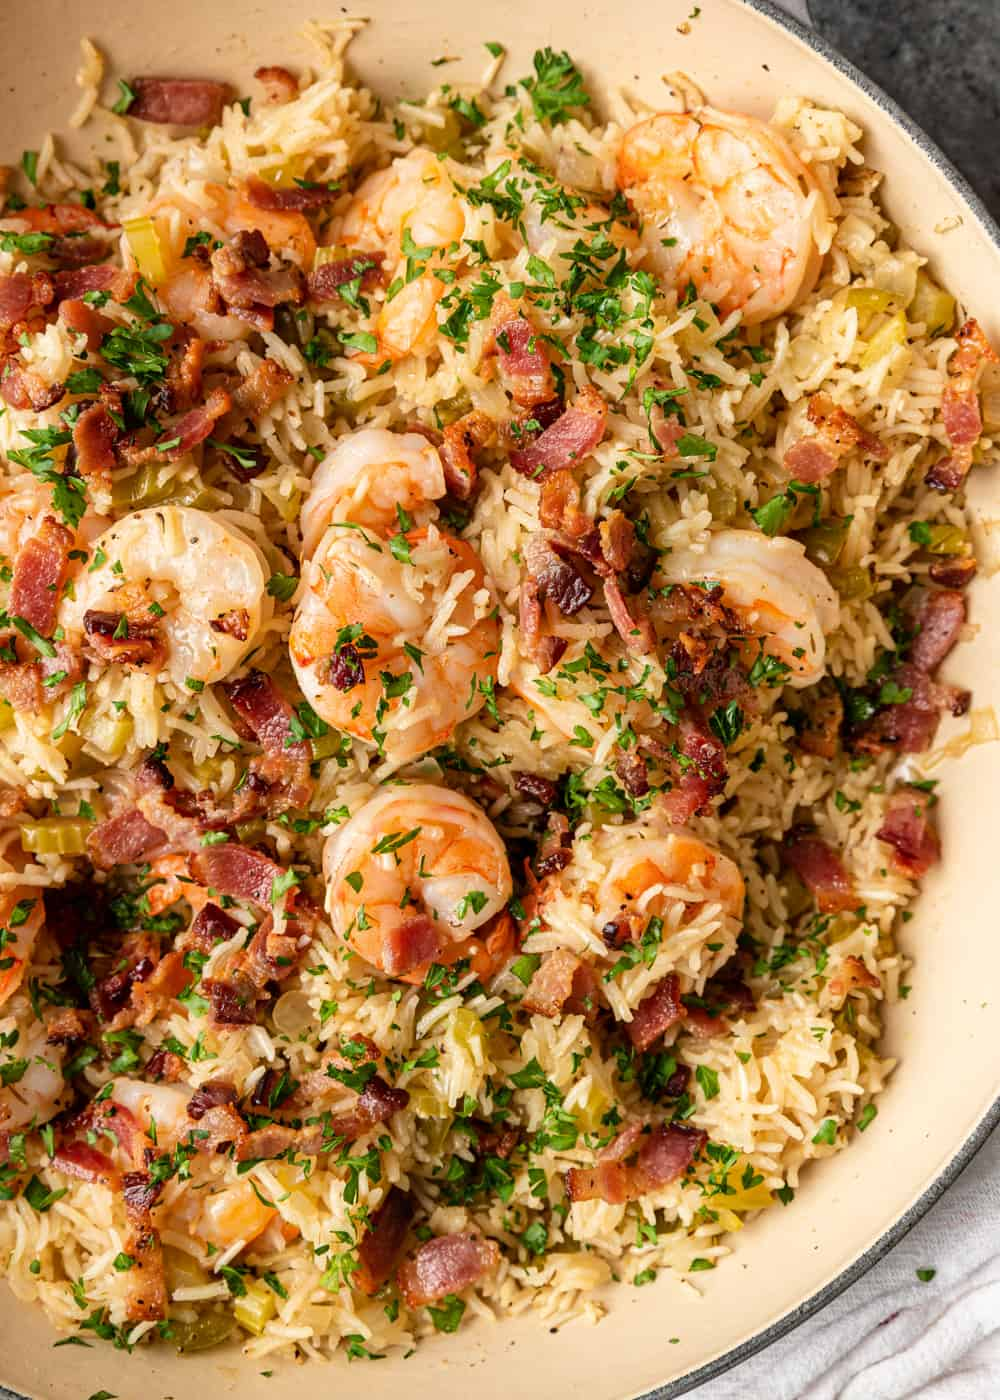 succulent shrimp mixed with bacon, cajun rice and herbs